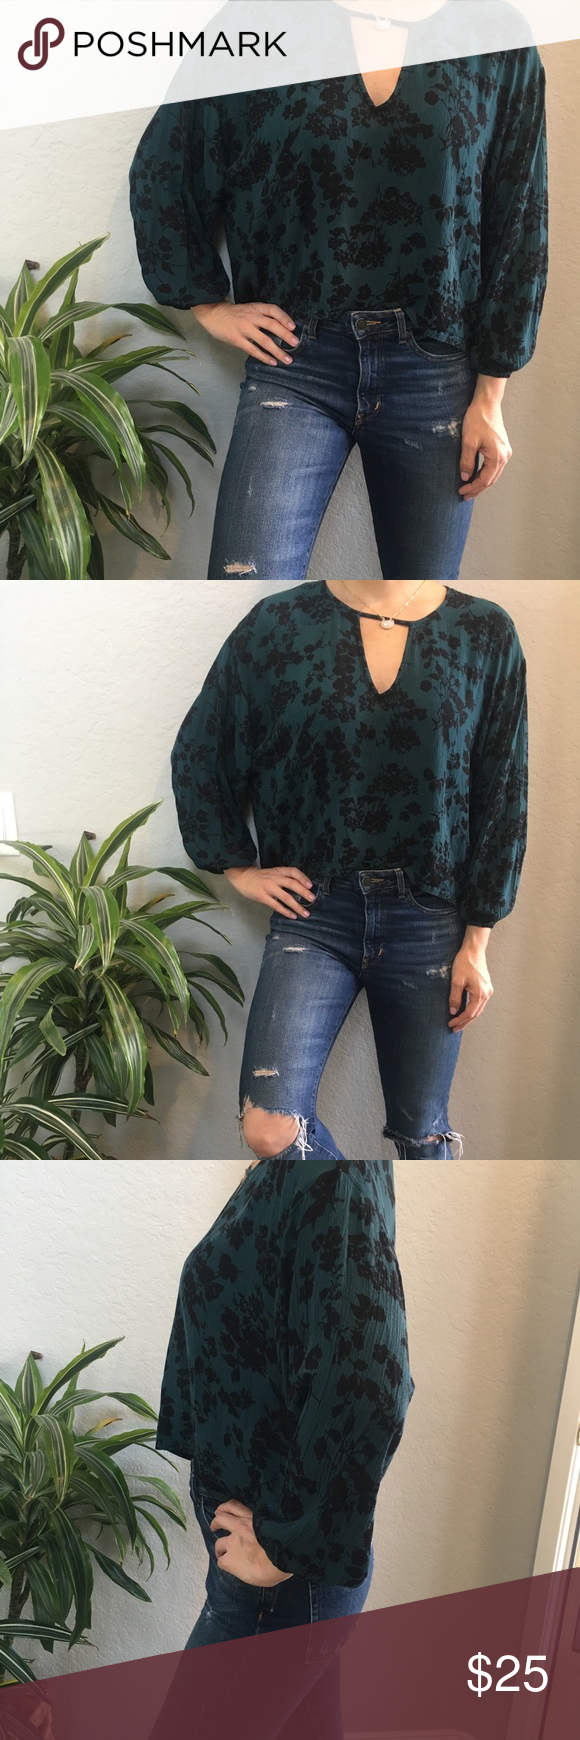 FLOWY FLORAL GREEN BLOUSE 😍 Sexy and classy. Easy to style, light weight and comfortable Tops Blouses